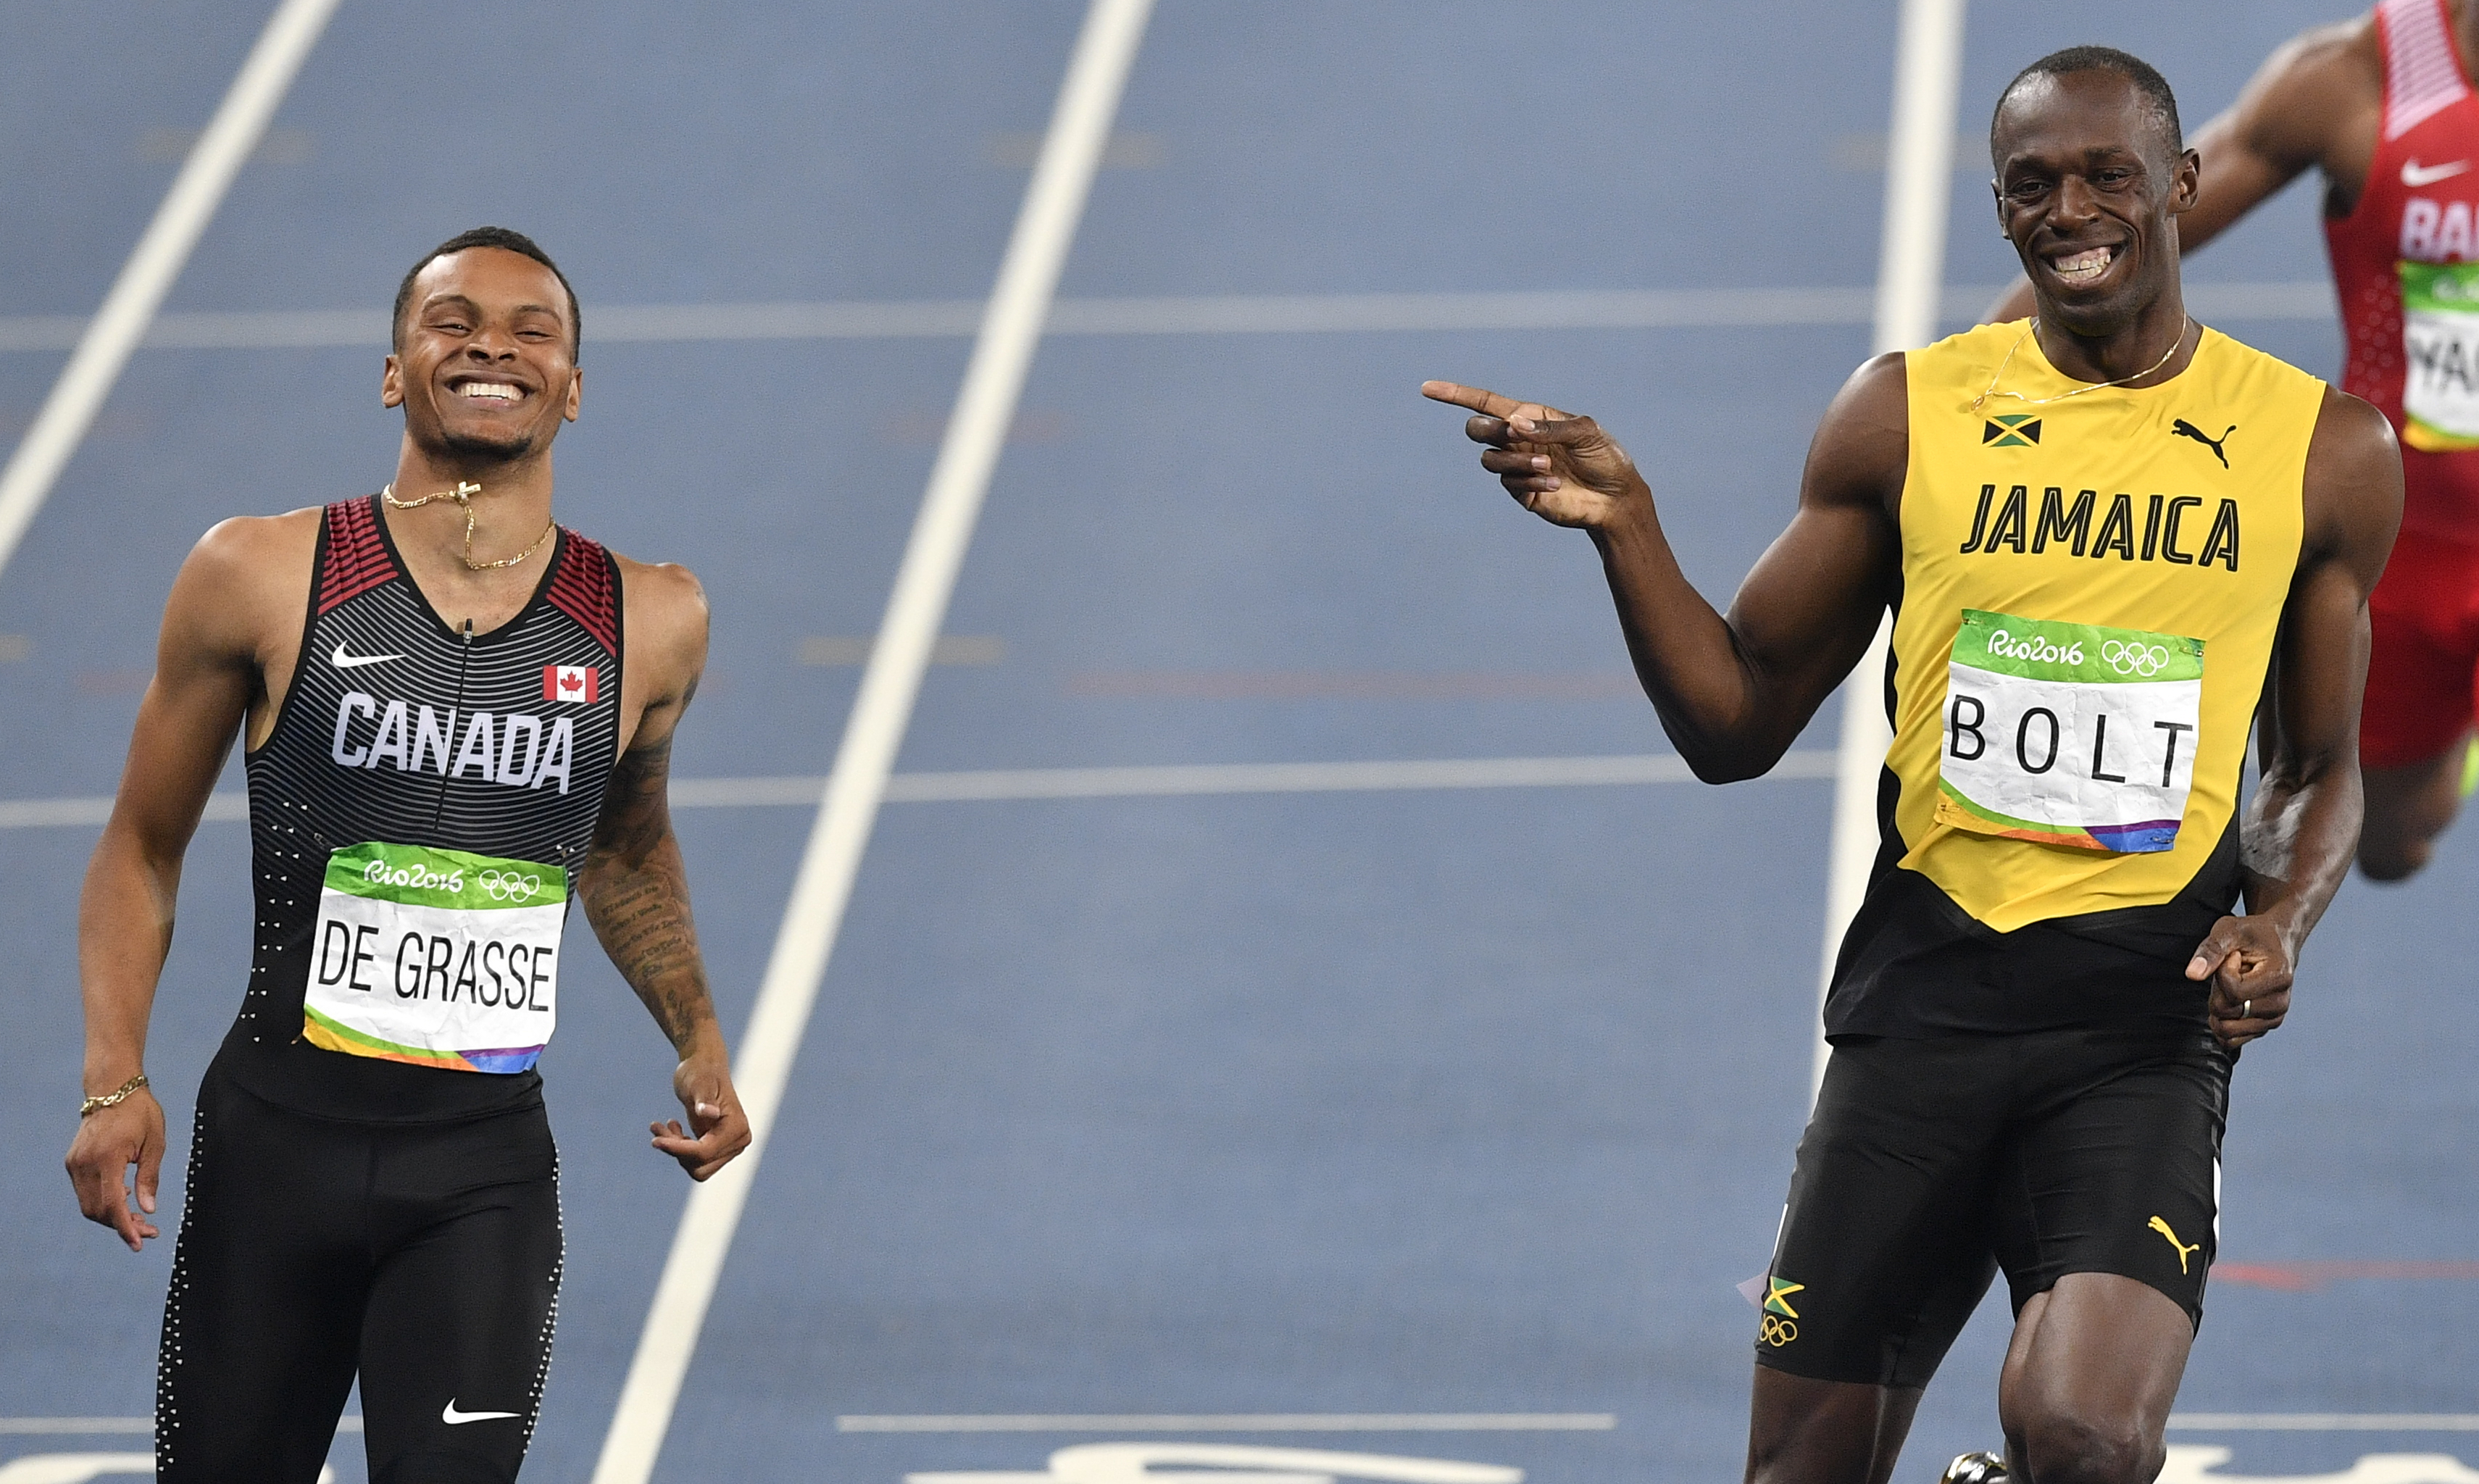 Jamaica's Usain Bolt and Canada's Andre De Grasse, left, compete in a men's 200-meter semifinal during the athletics competitions of the 2016 Summer Olympics at the Olympic stadium in Rio de Janeiro, Brazil, Wednesday, Aug. 17, 2016. (AP Photo/Martin Meis